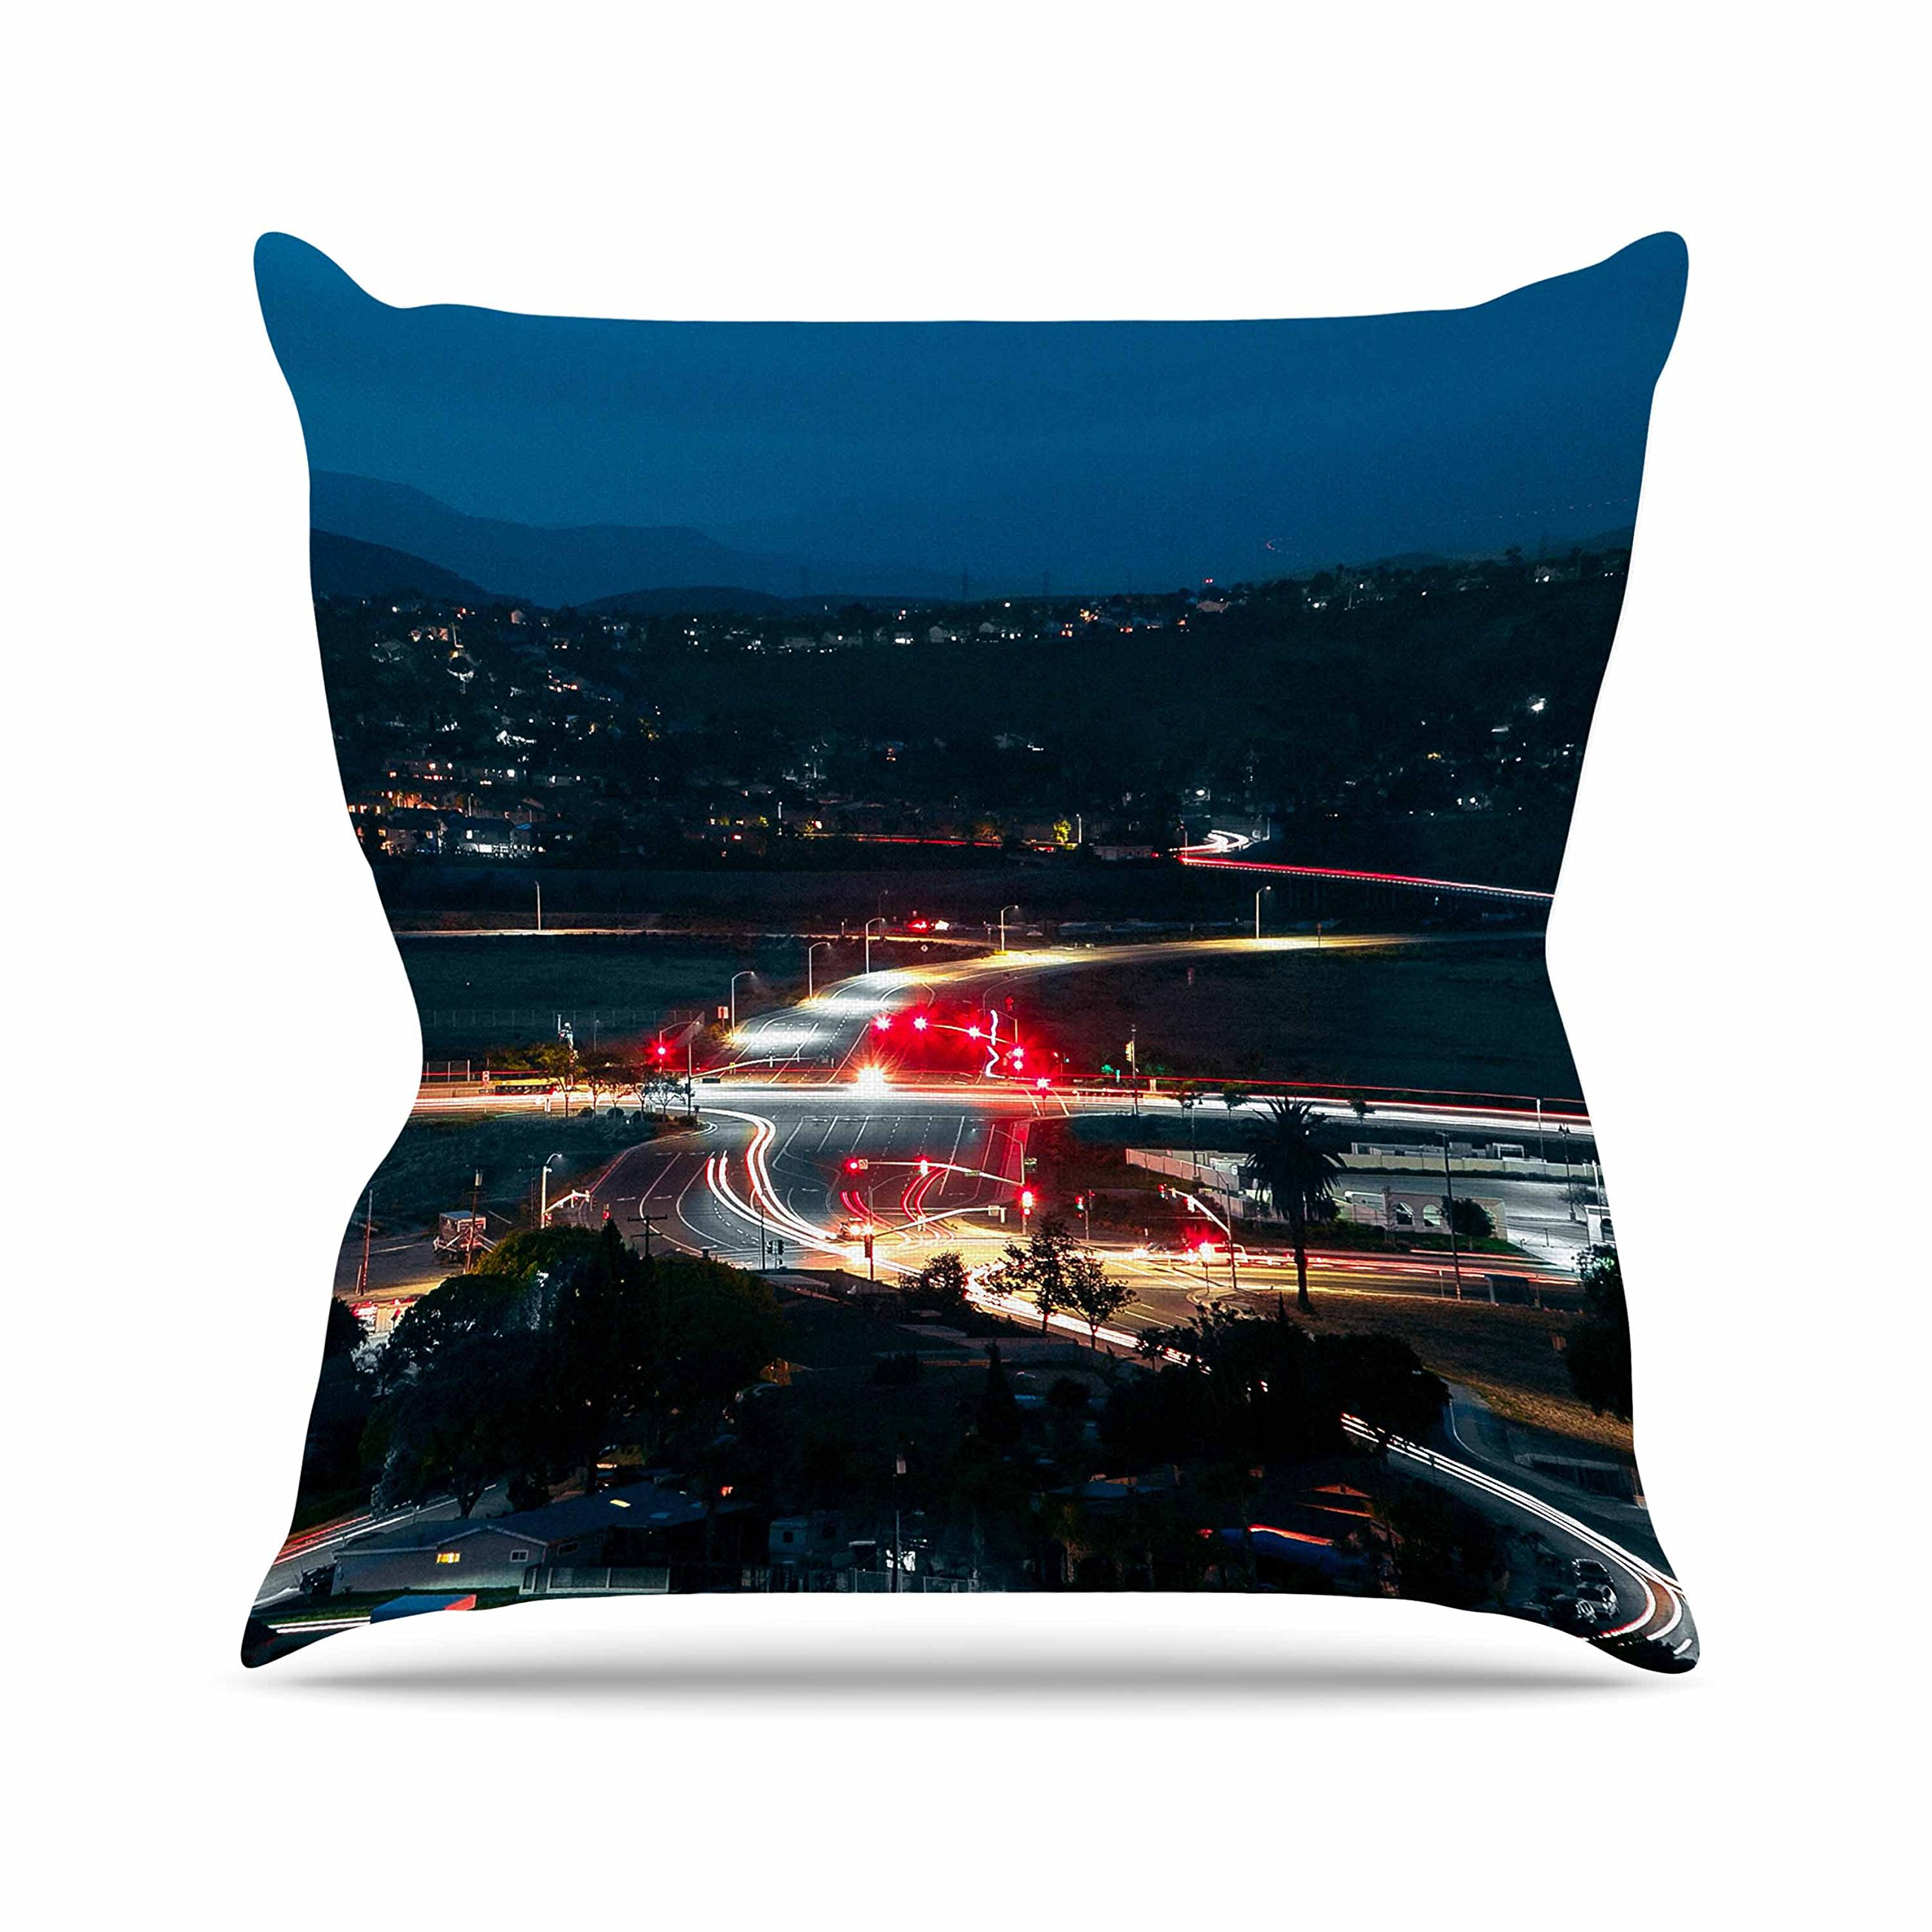 Kess InHouse Just L Chasing Lights Blue Red Outdoor Throw Pillow, 16'' x 16''